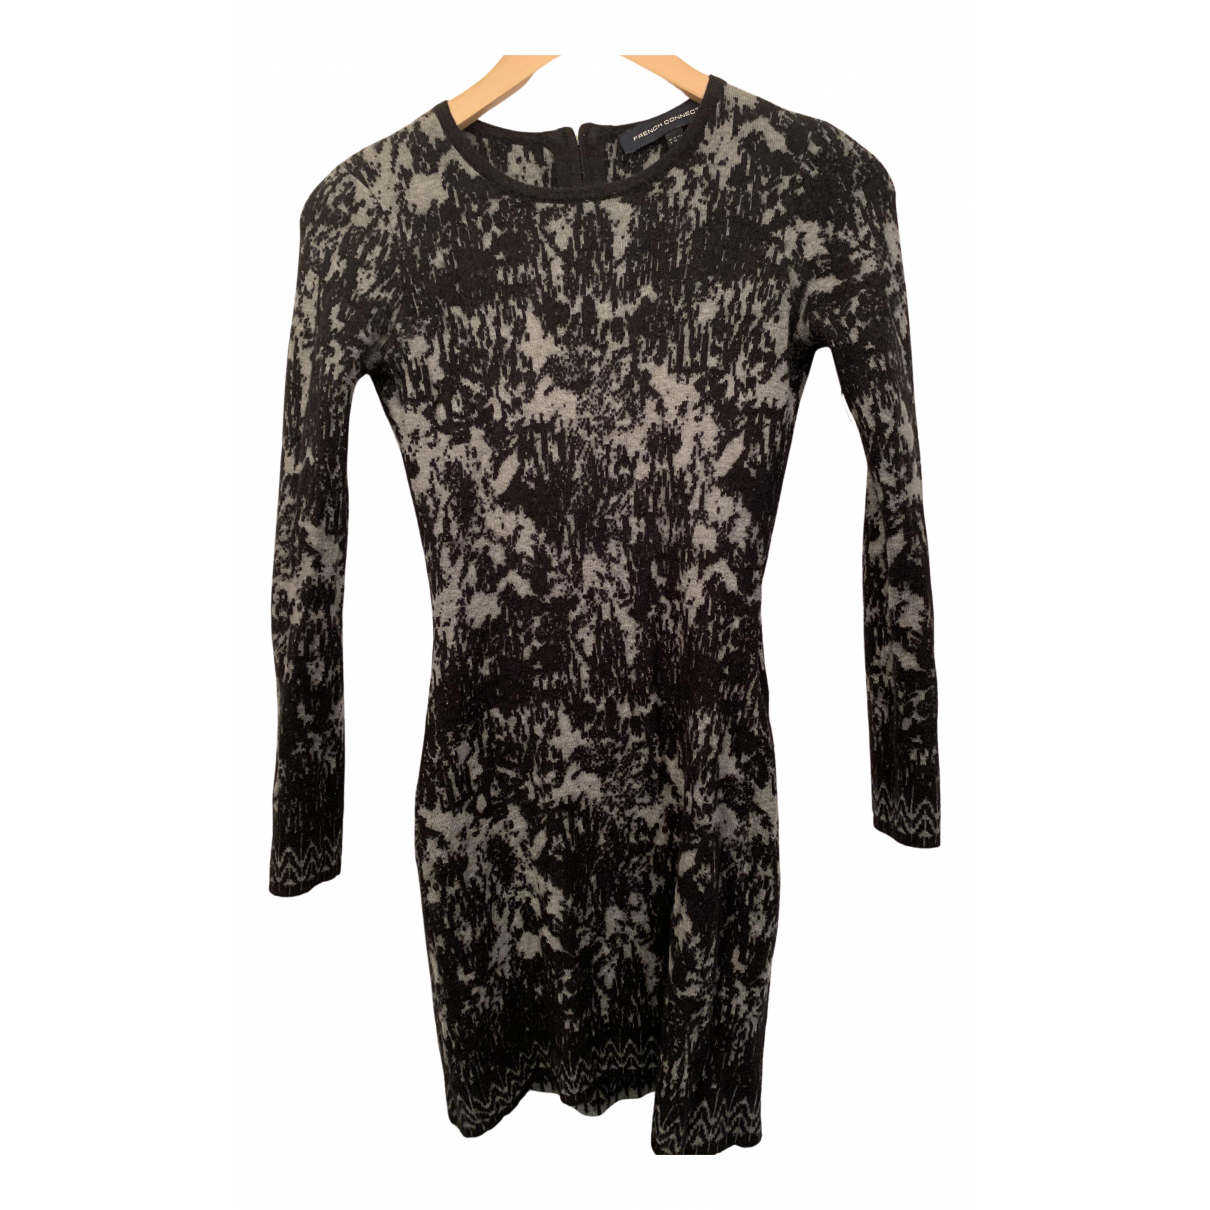 French Connection \N Kleid in  Schwarz Wolle